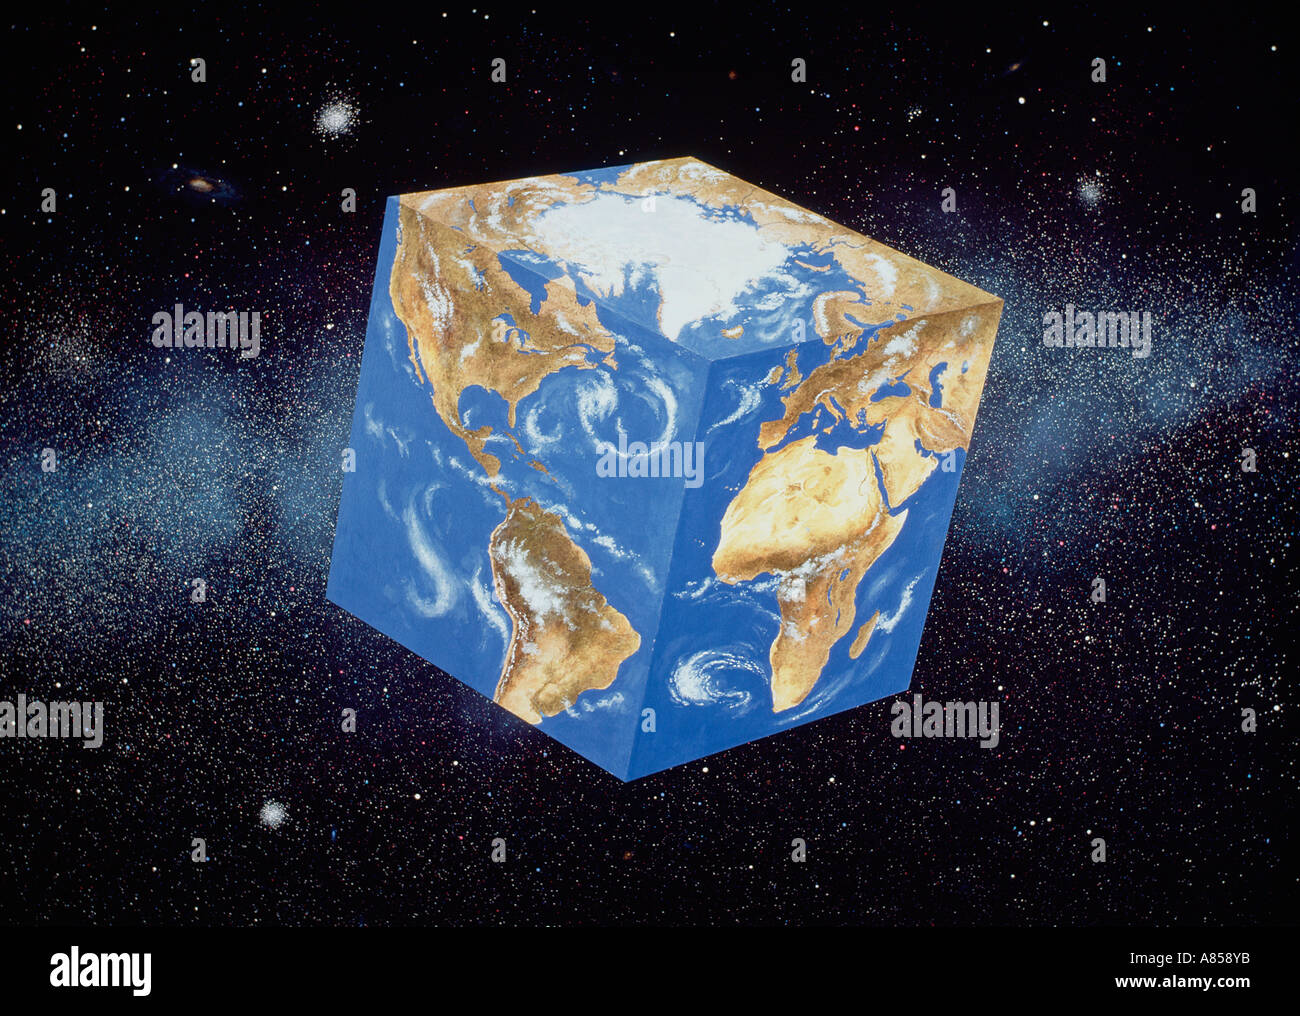 Concept image of cubic planet Earth viewed from space. - Stock Image